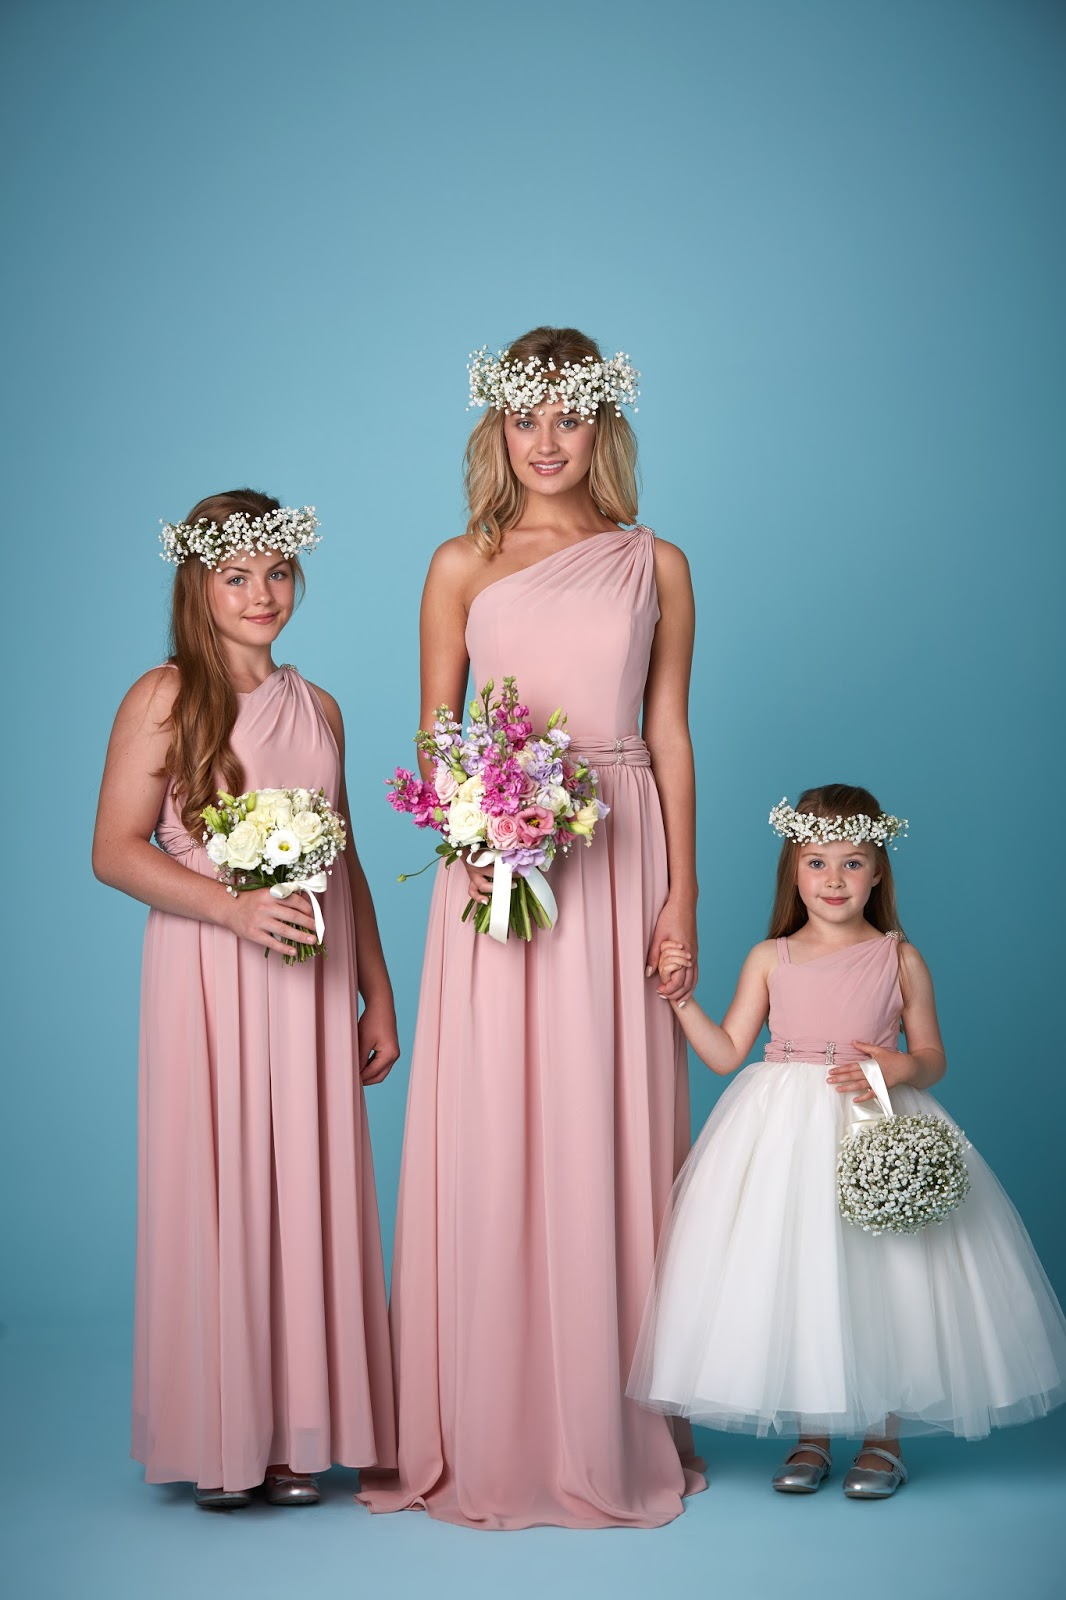 New bridesmaid dresses from Amanda Wyatt – West Weddings